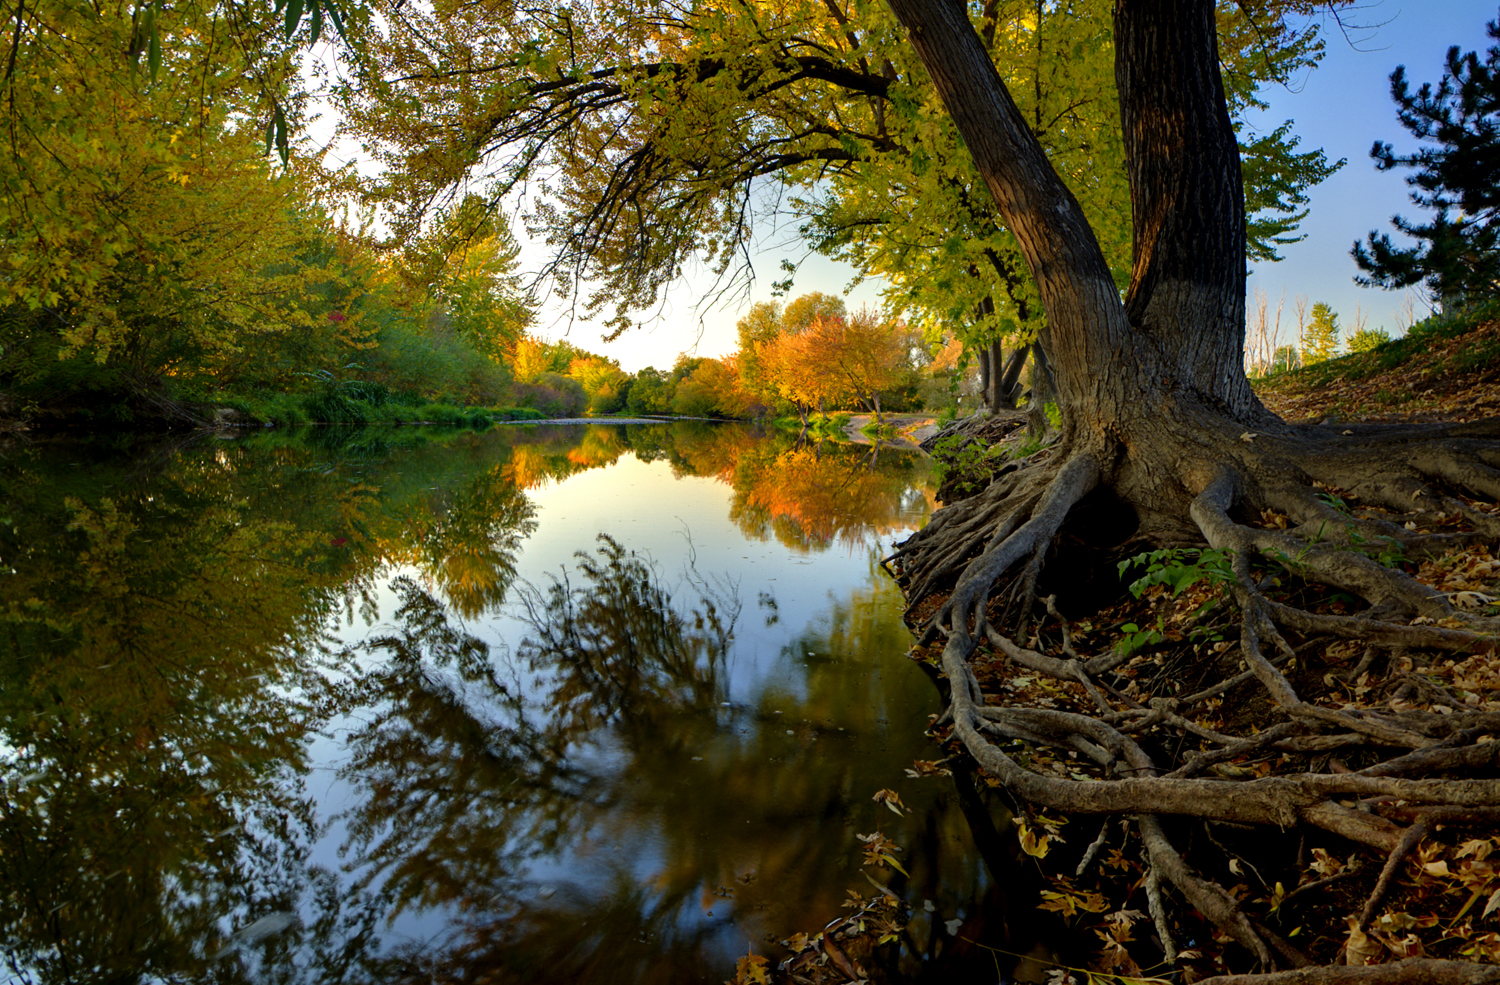 https://upload.wikimedia.org/wikipedia/commons/3/31/Boise_River_Autumn.jpg